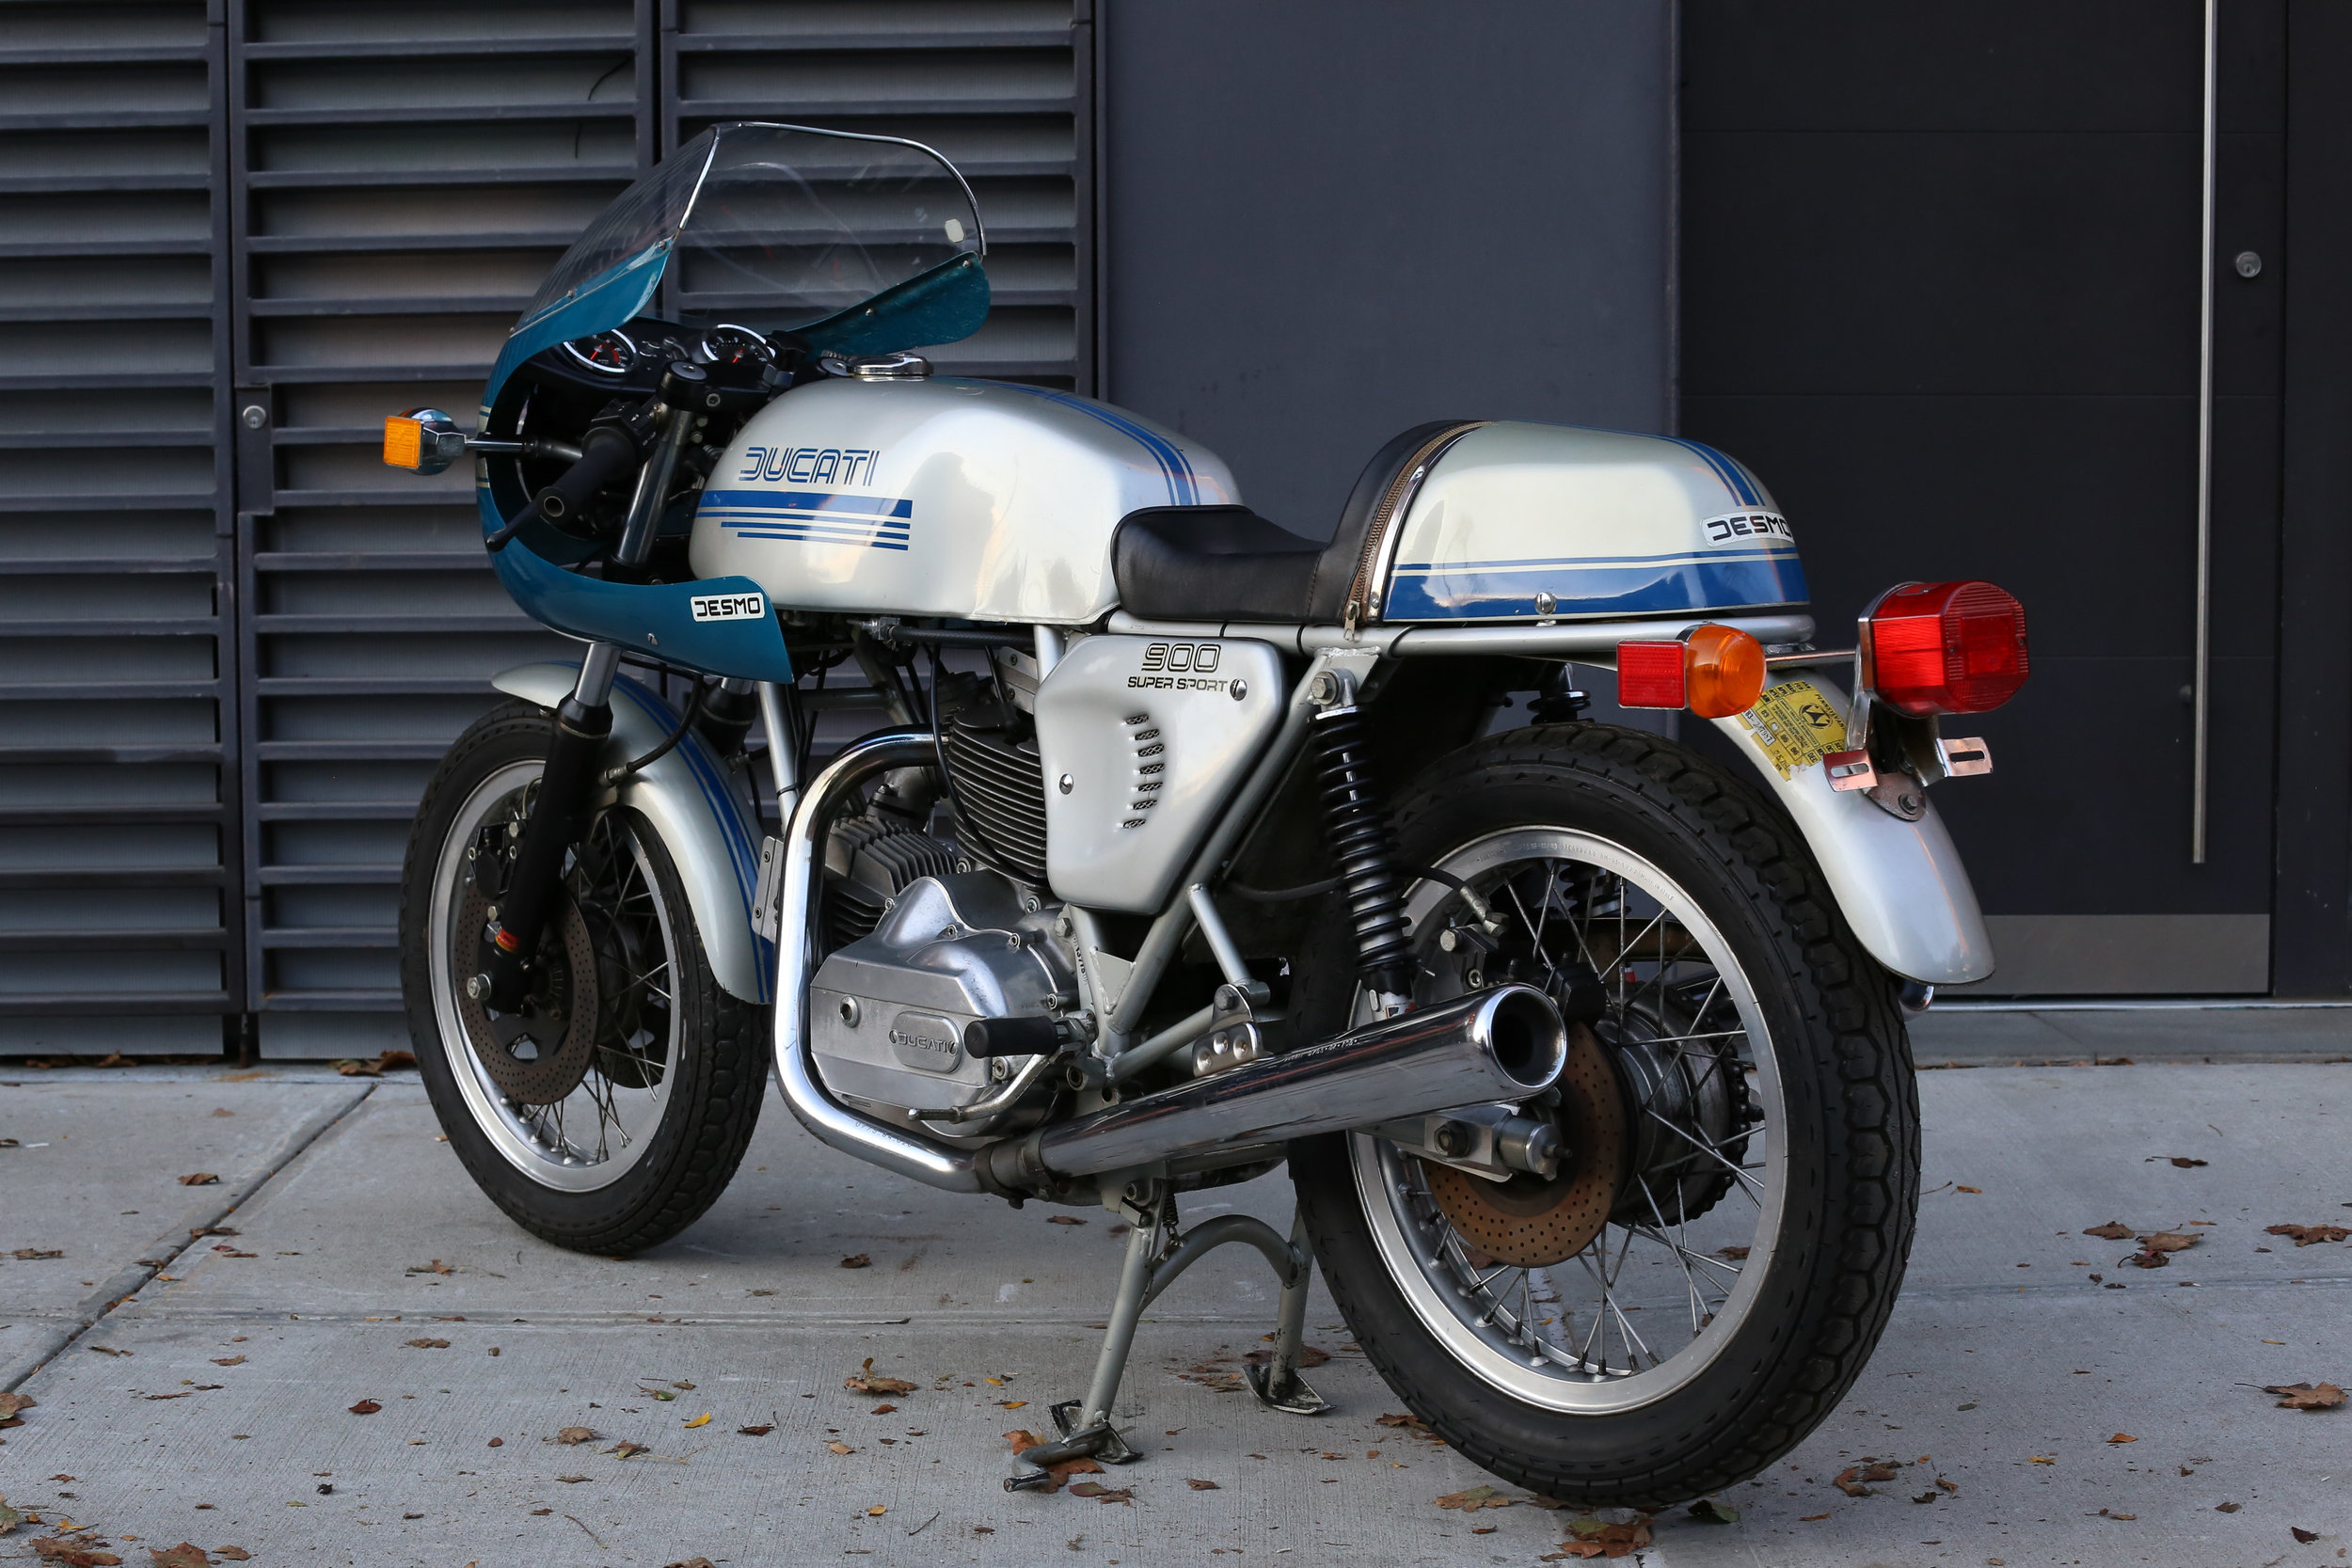 1977 Ducati 900SS tail section